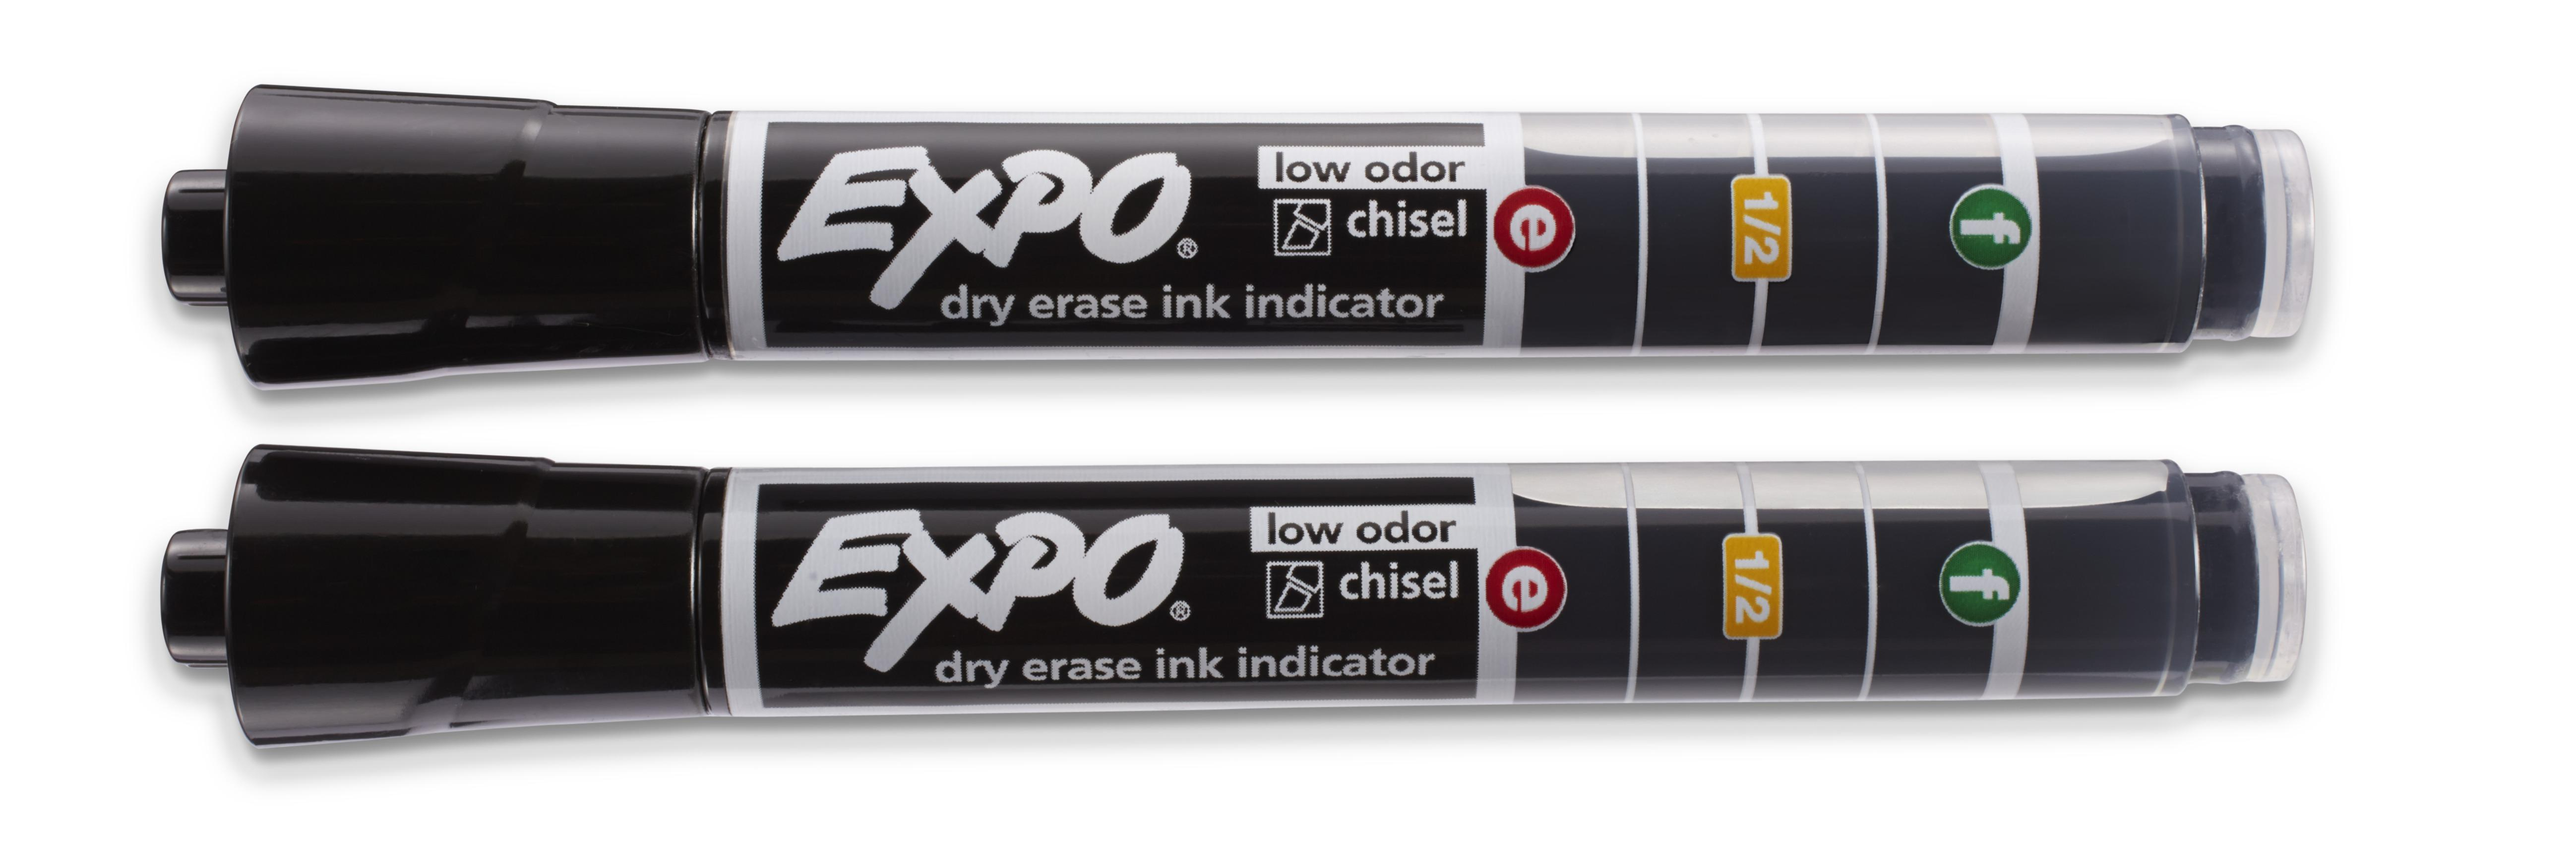 Amazon.com : EXPO Dry Erase Markers with Ink Indicator